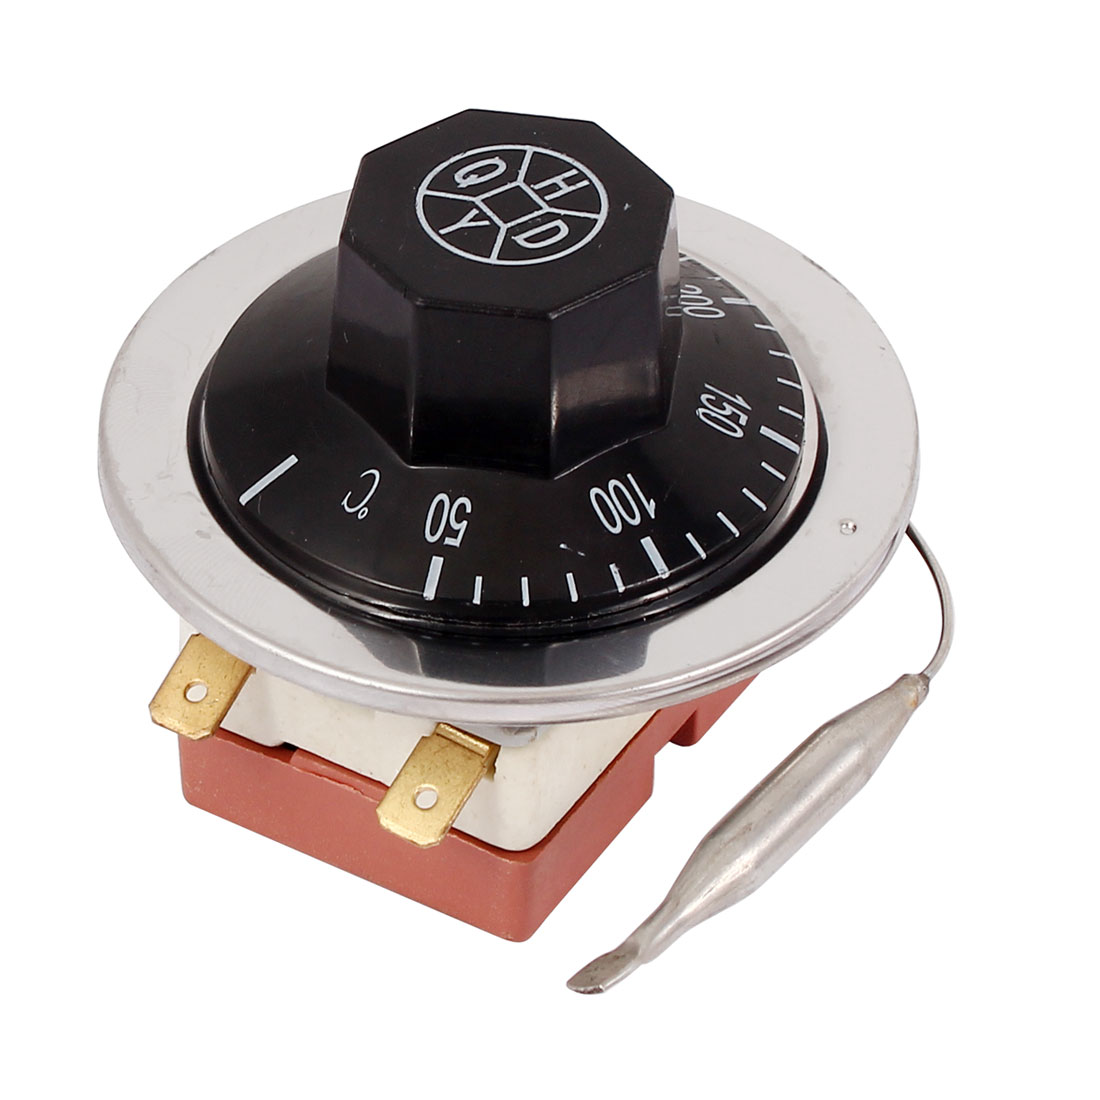 AC 250V 16A 50-300 Celsius Detection 2 Terminals Temperature Control Switch Thermostat